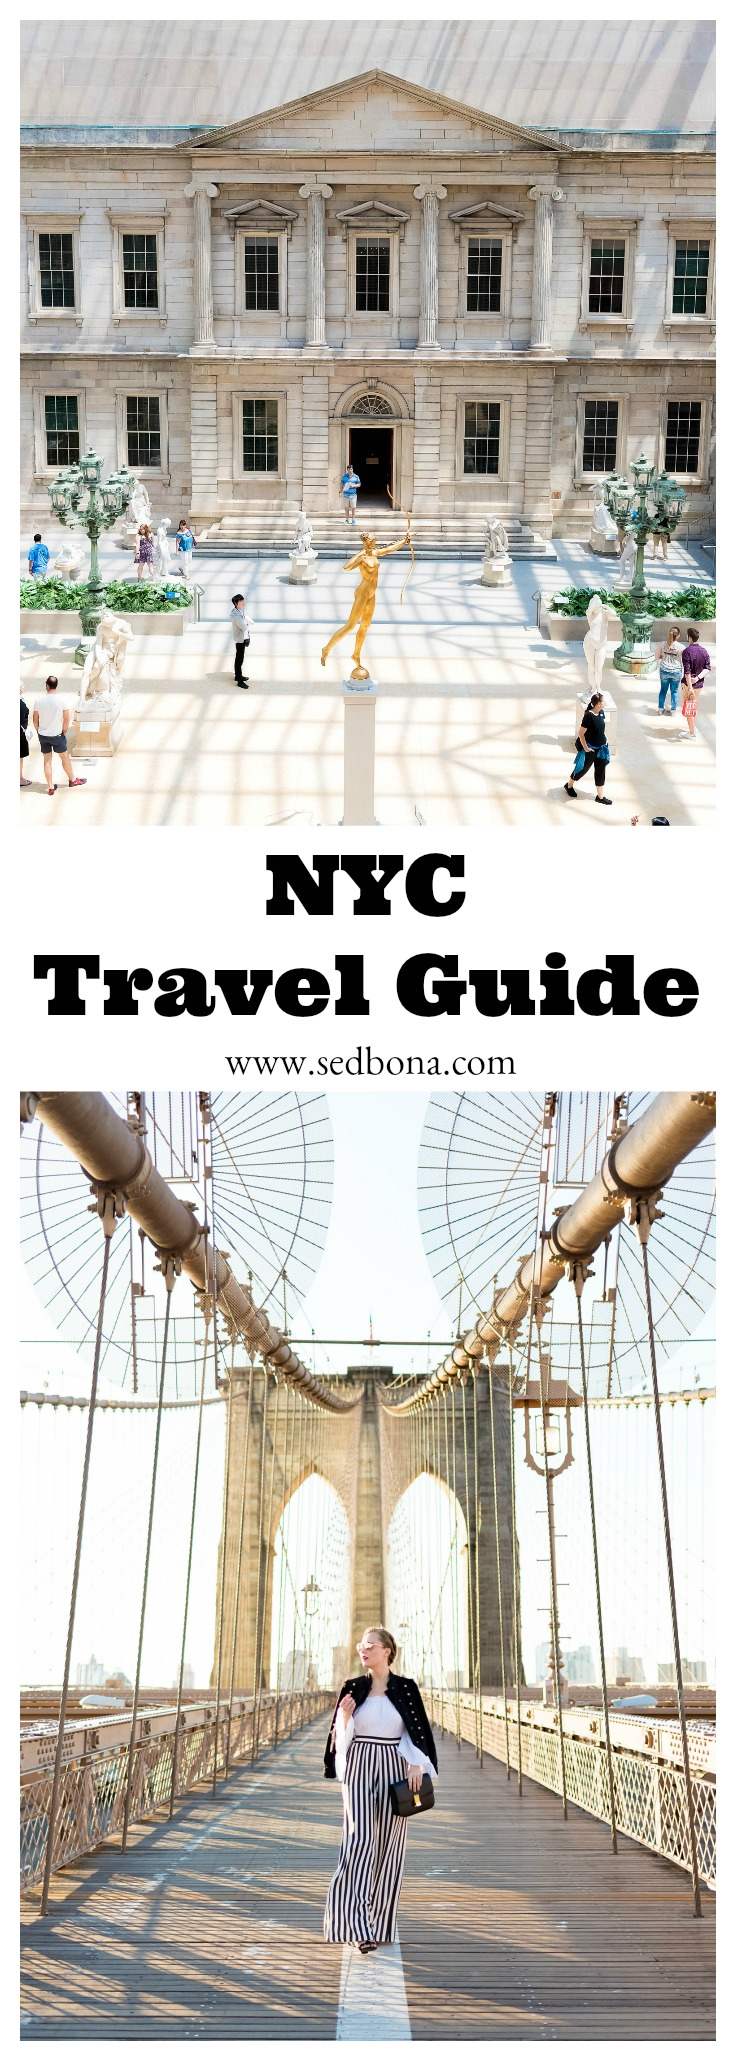 NYC Travel Guide Sed Bona